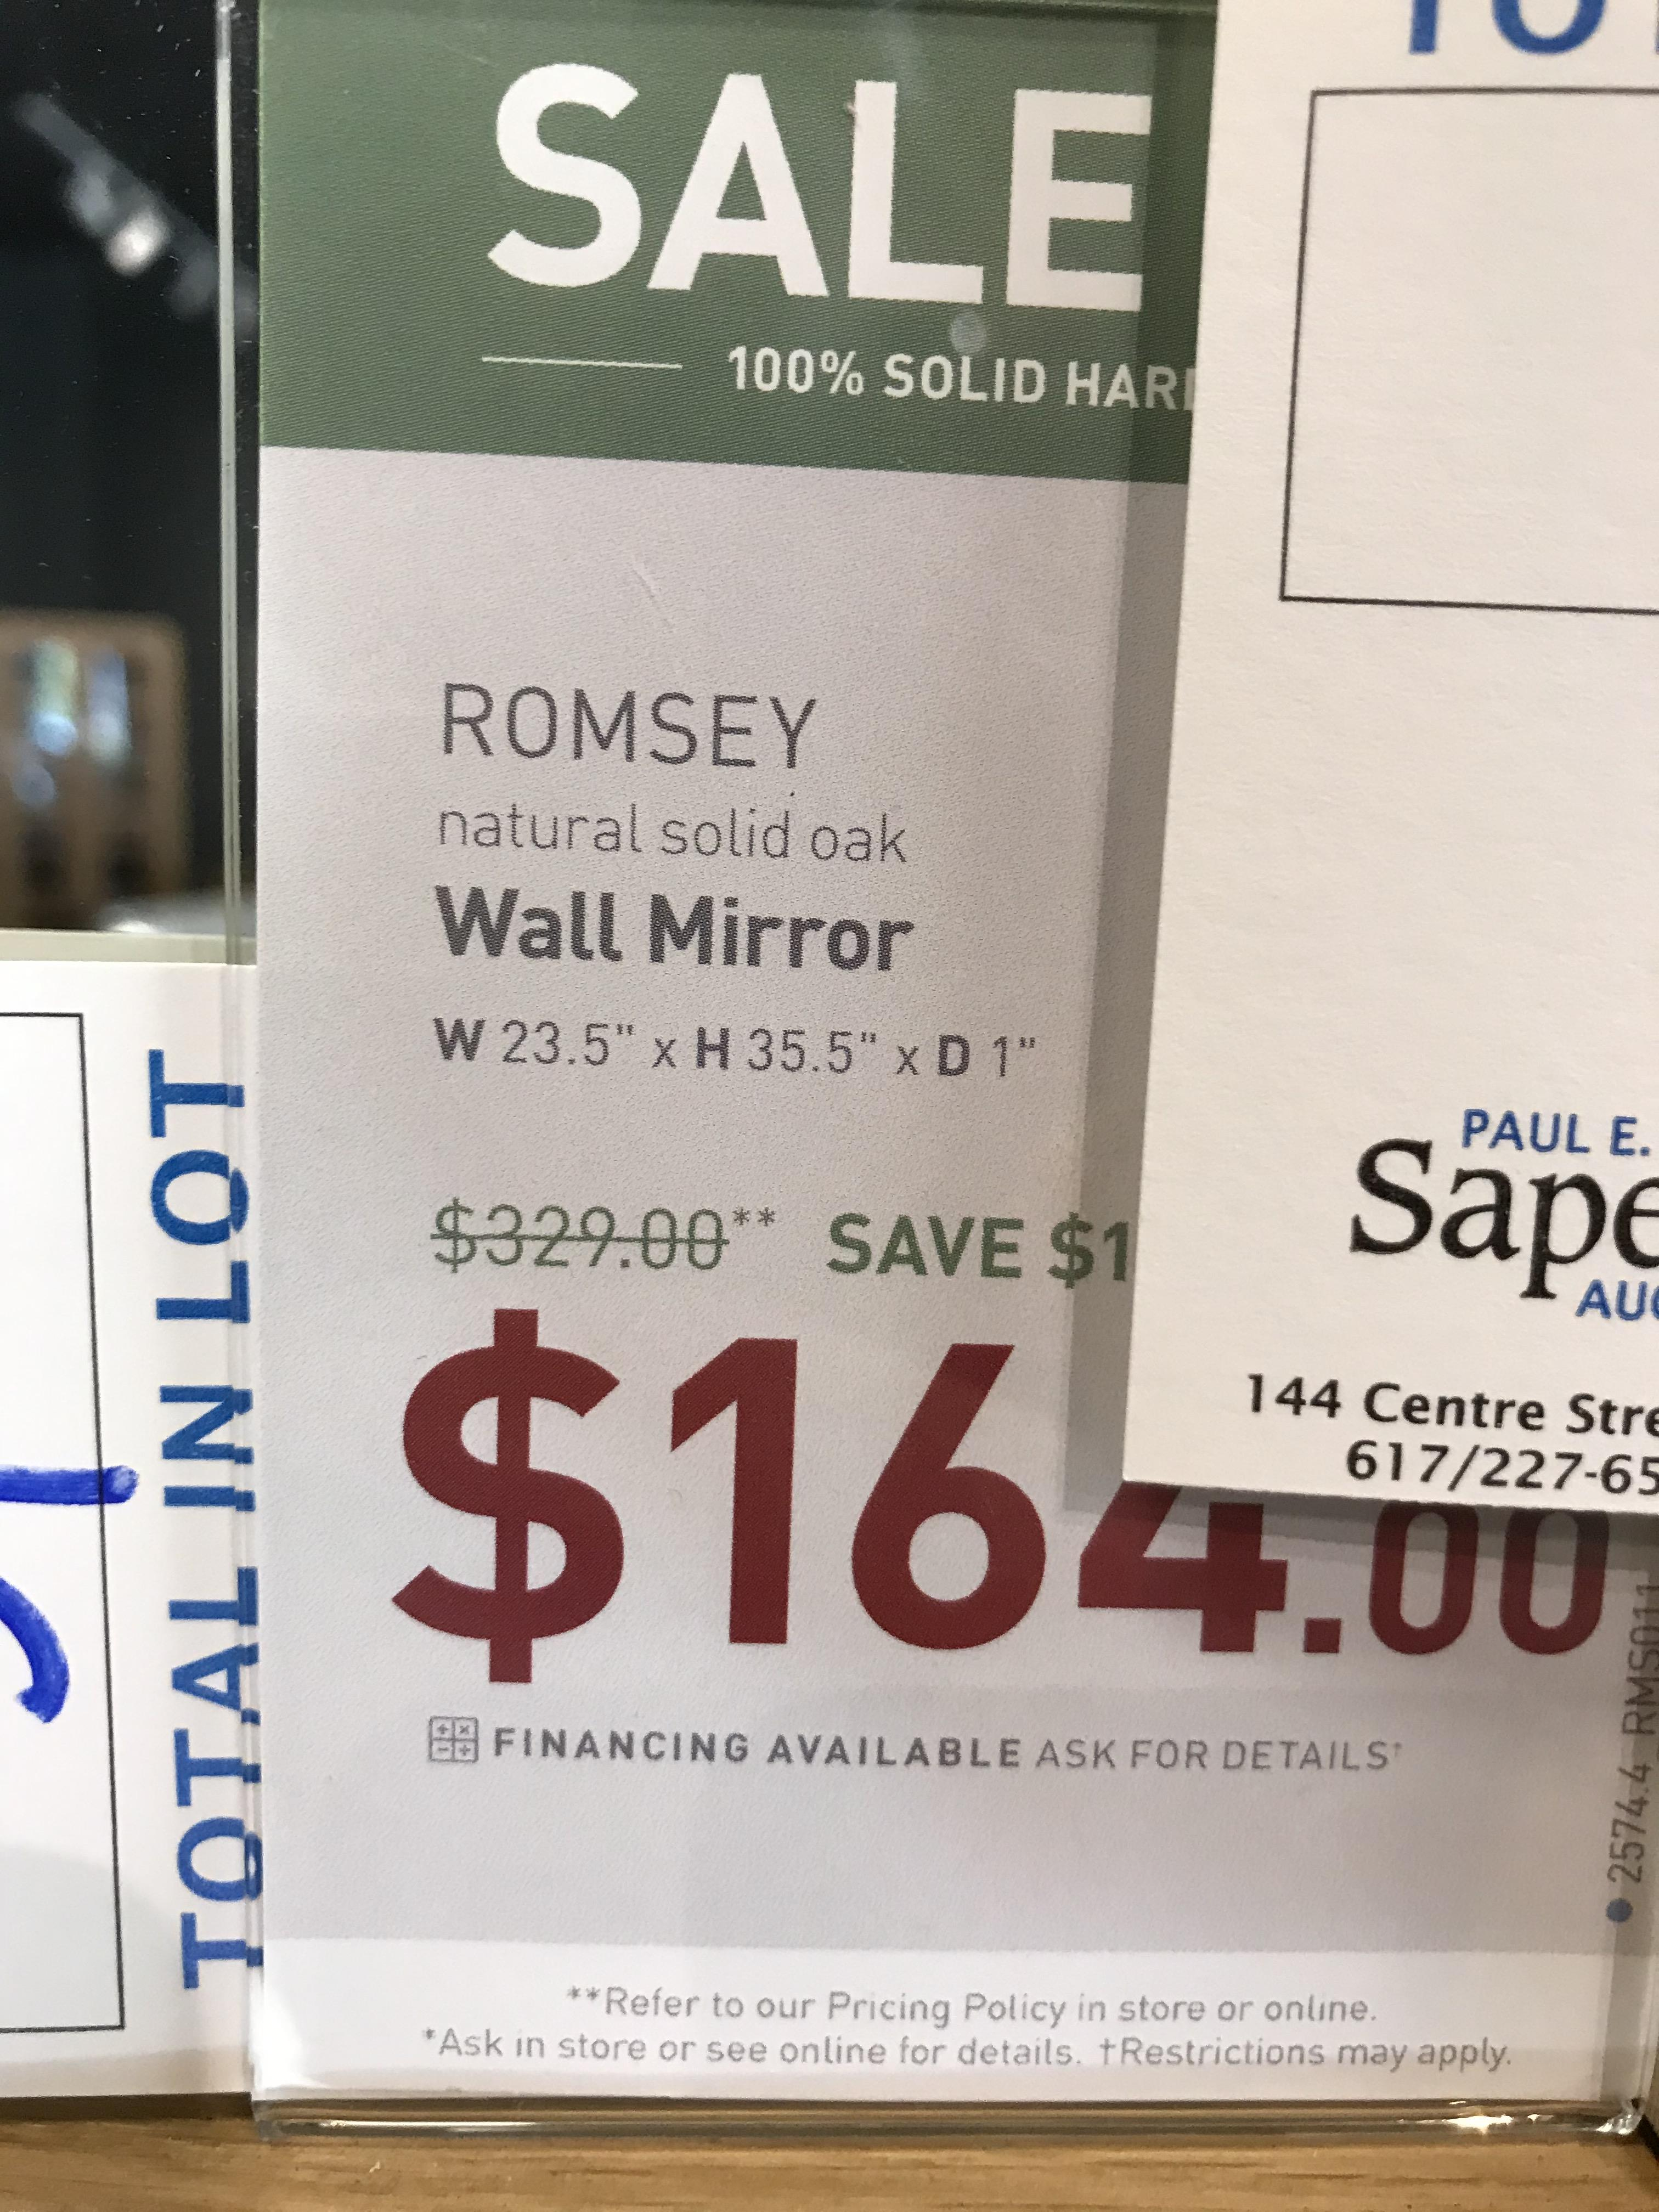 Wall Mirror (Romsey) See Picture For Dimensions and Product Info - Image 2 of 2